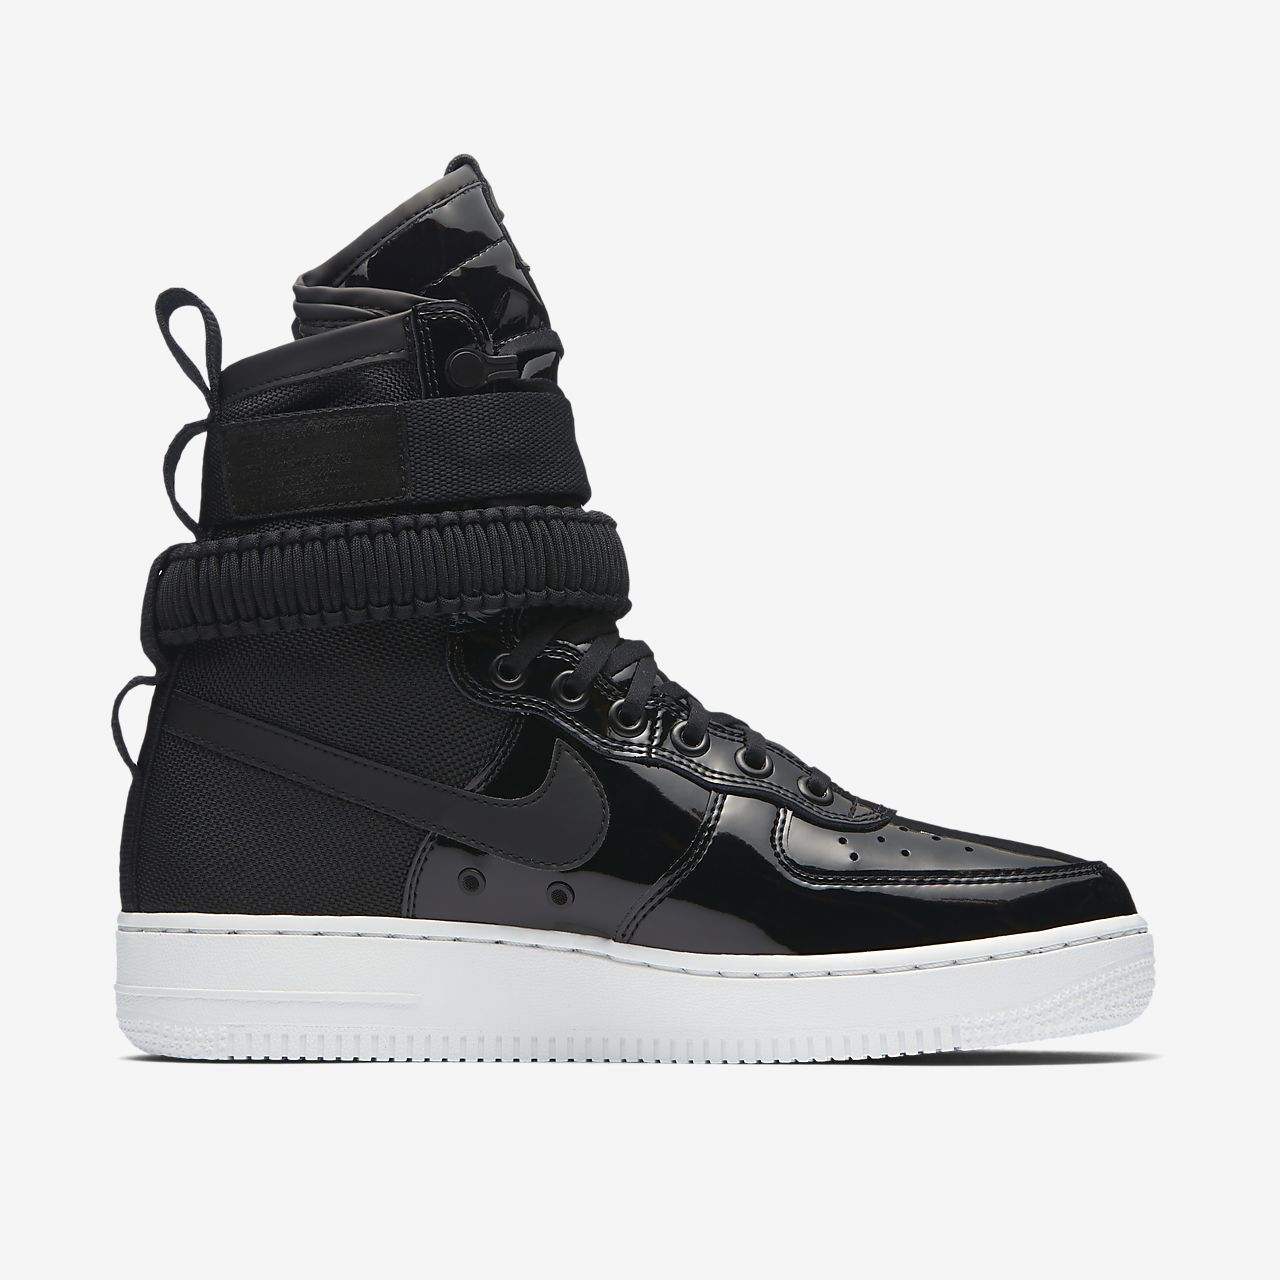 nike air force 1 high 7 nz